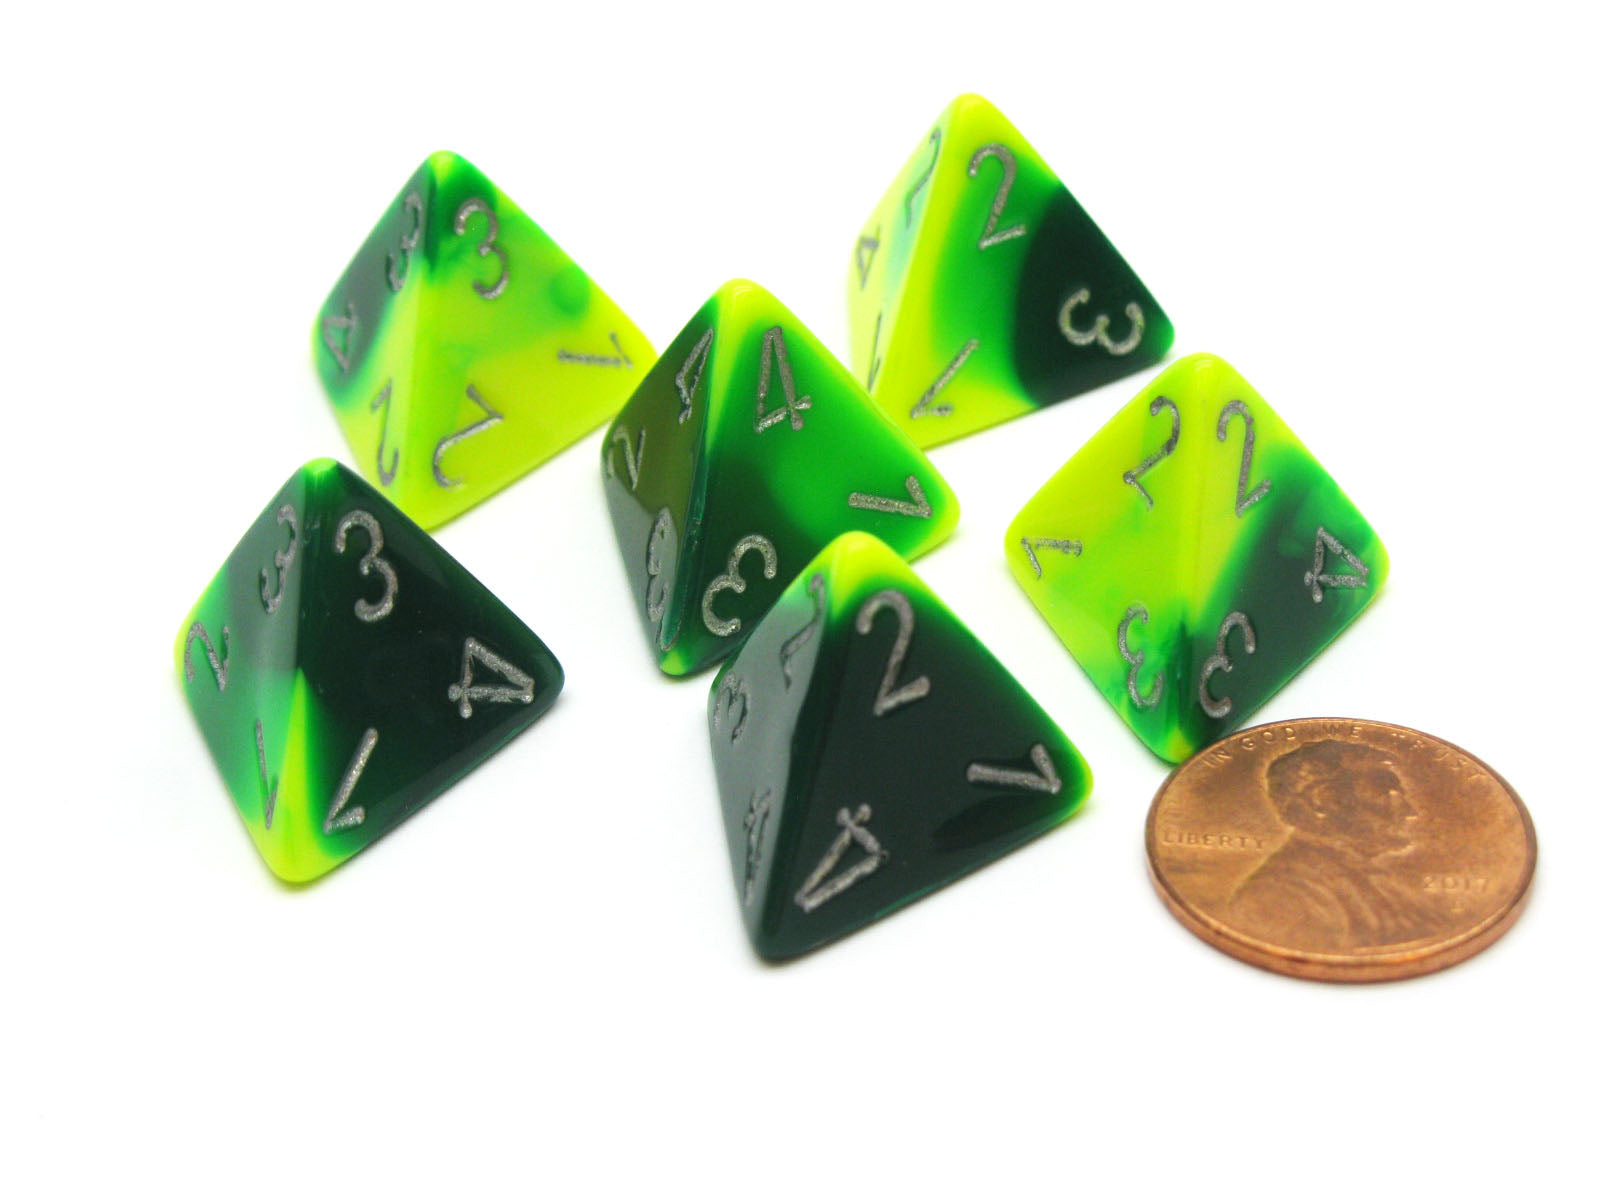 Gemini 18mm 4 Sided D4 Chessex Dice, 6 Pieces - Green-Yellow with Silver